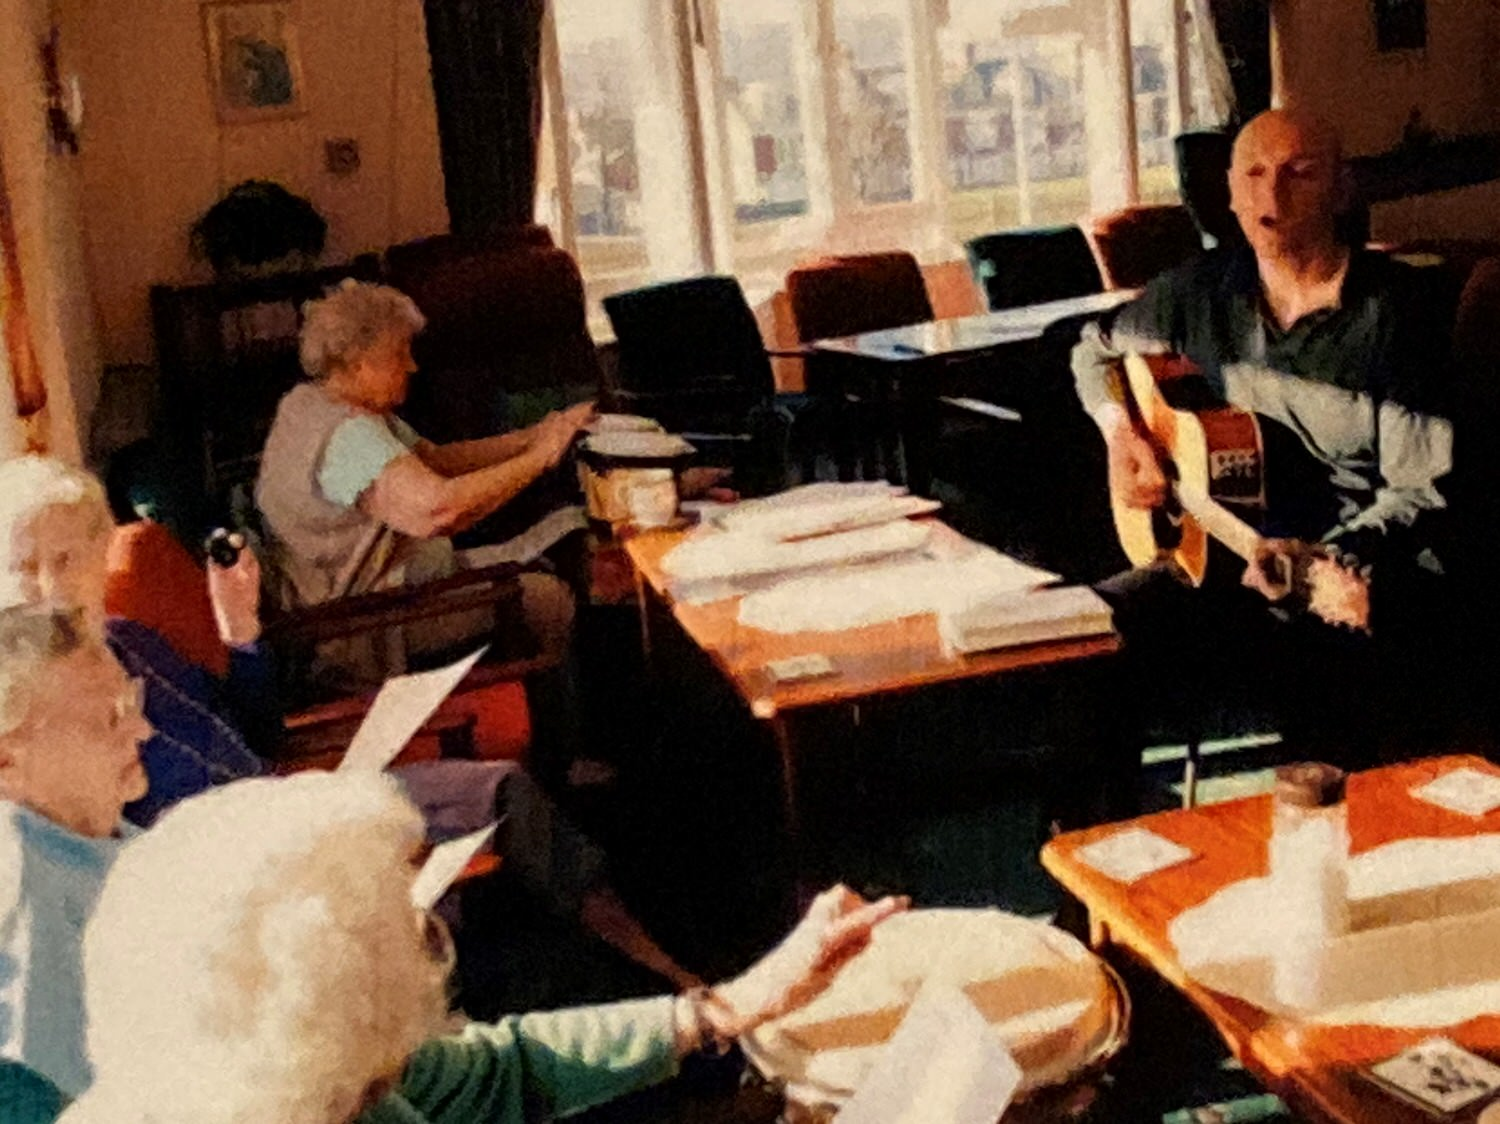 Residents of a care home listening to Steve playing a guitar